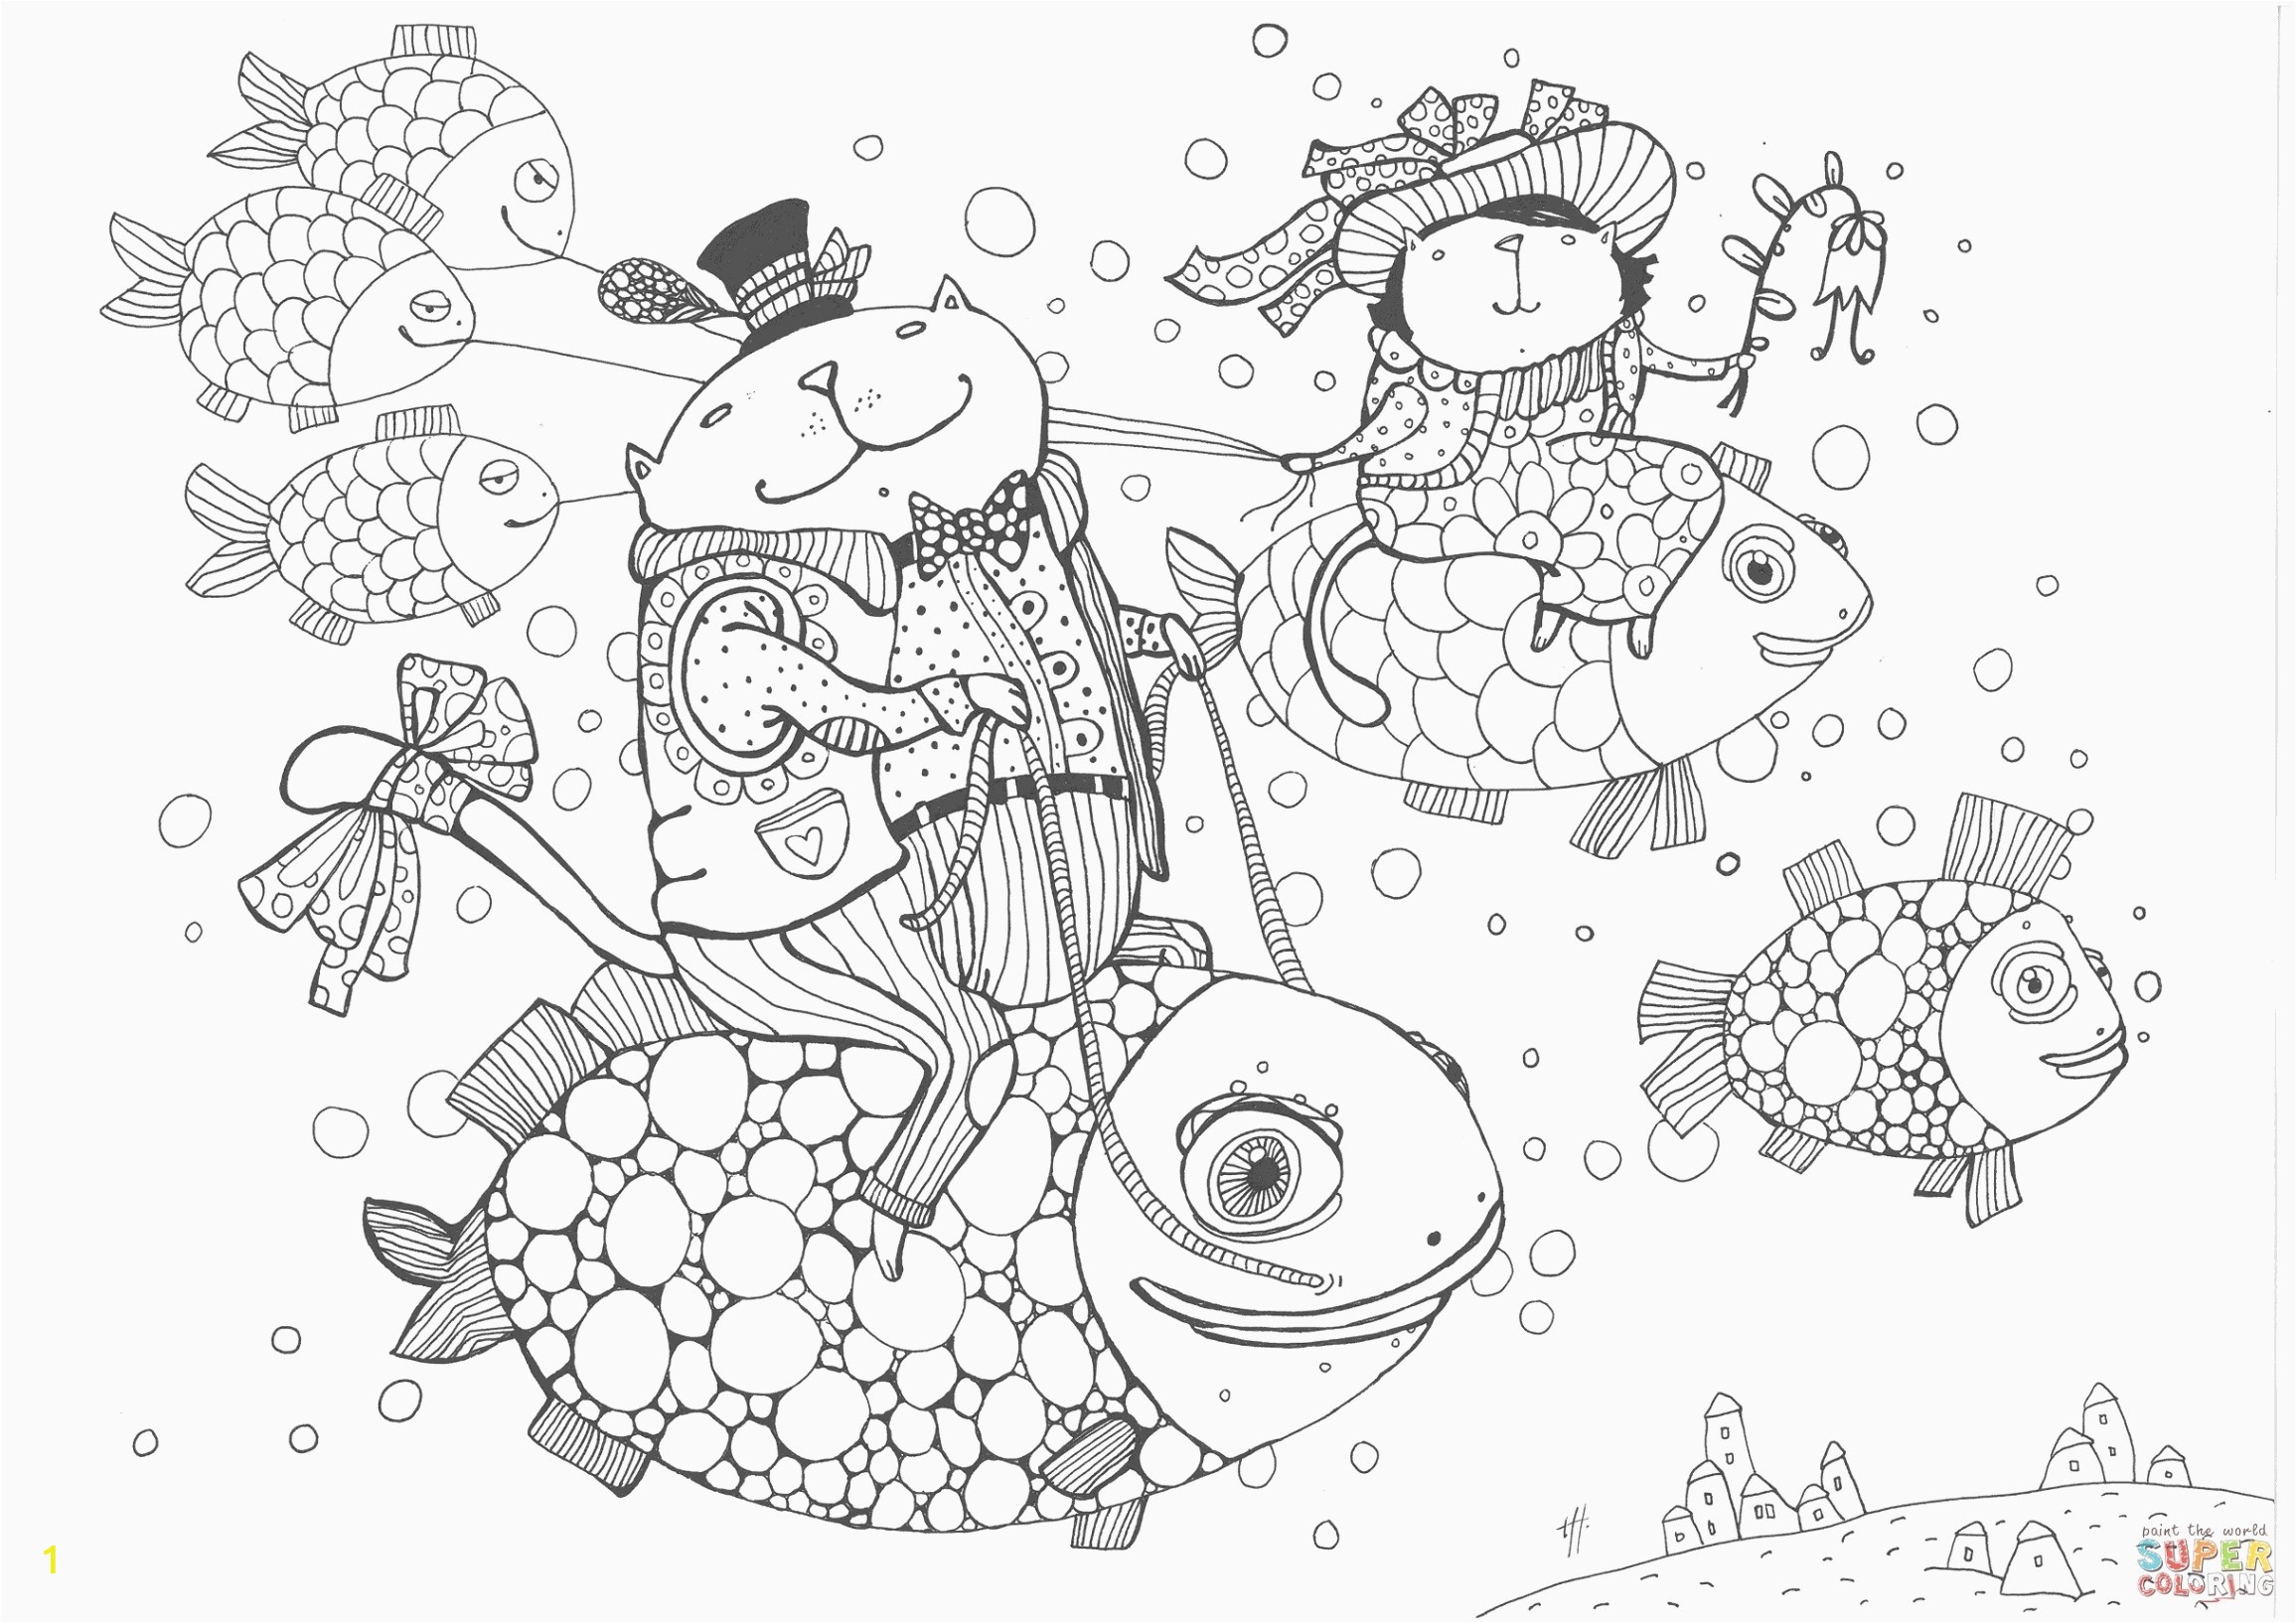 printable princess coloring pages weather toys mickey mouse adult for kids minions chinese colouring adults huge mandala rio excavator page easy animal book unicorn sheets to print